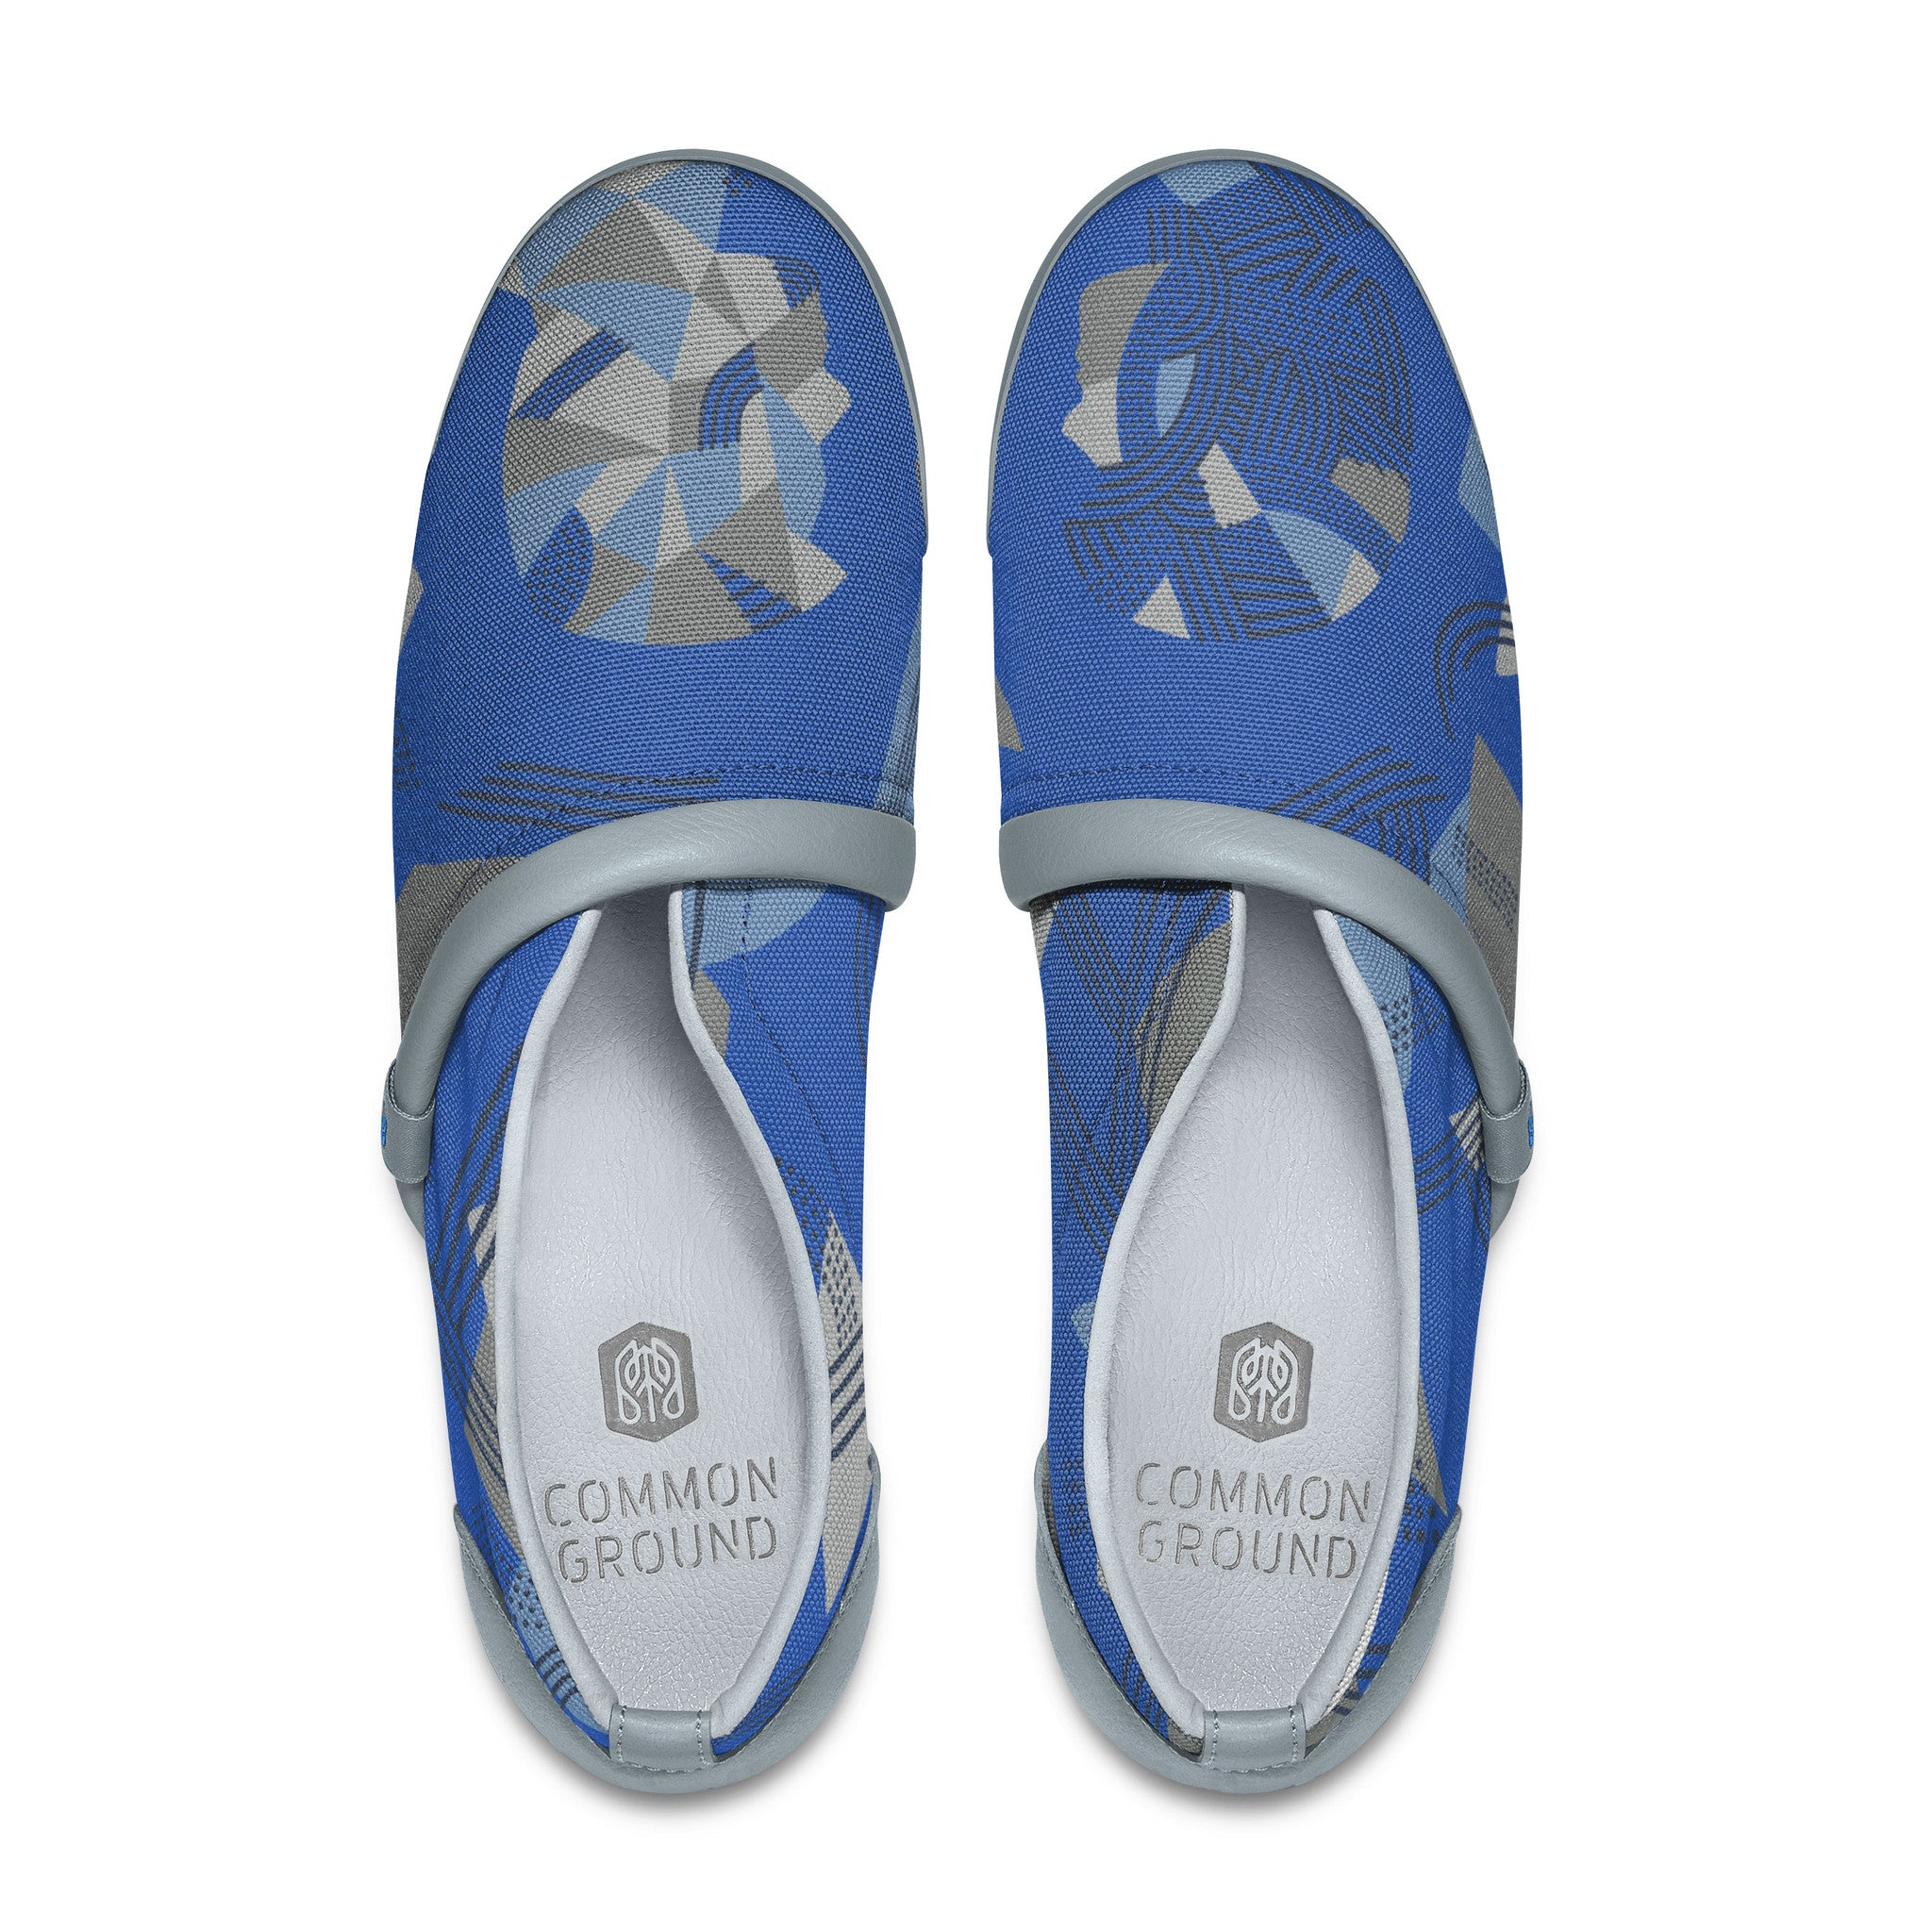 Strong_Blue - Common Ground Footwear Shoes Top View